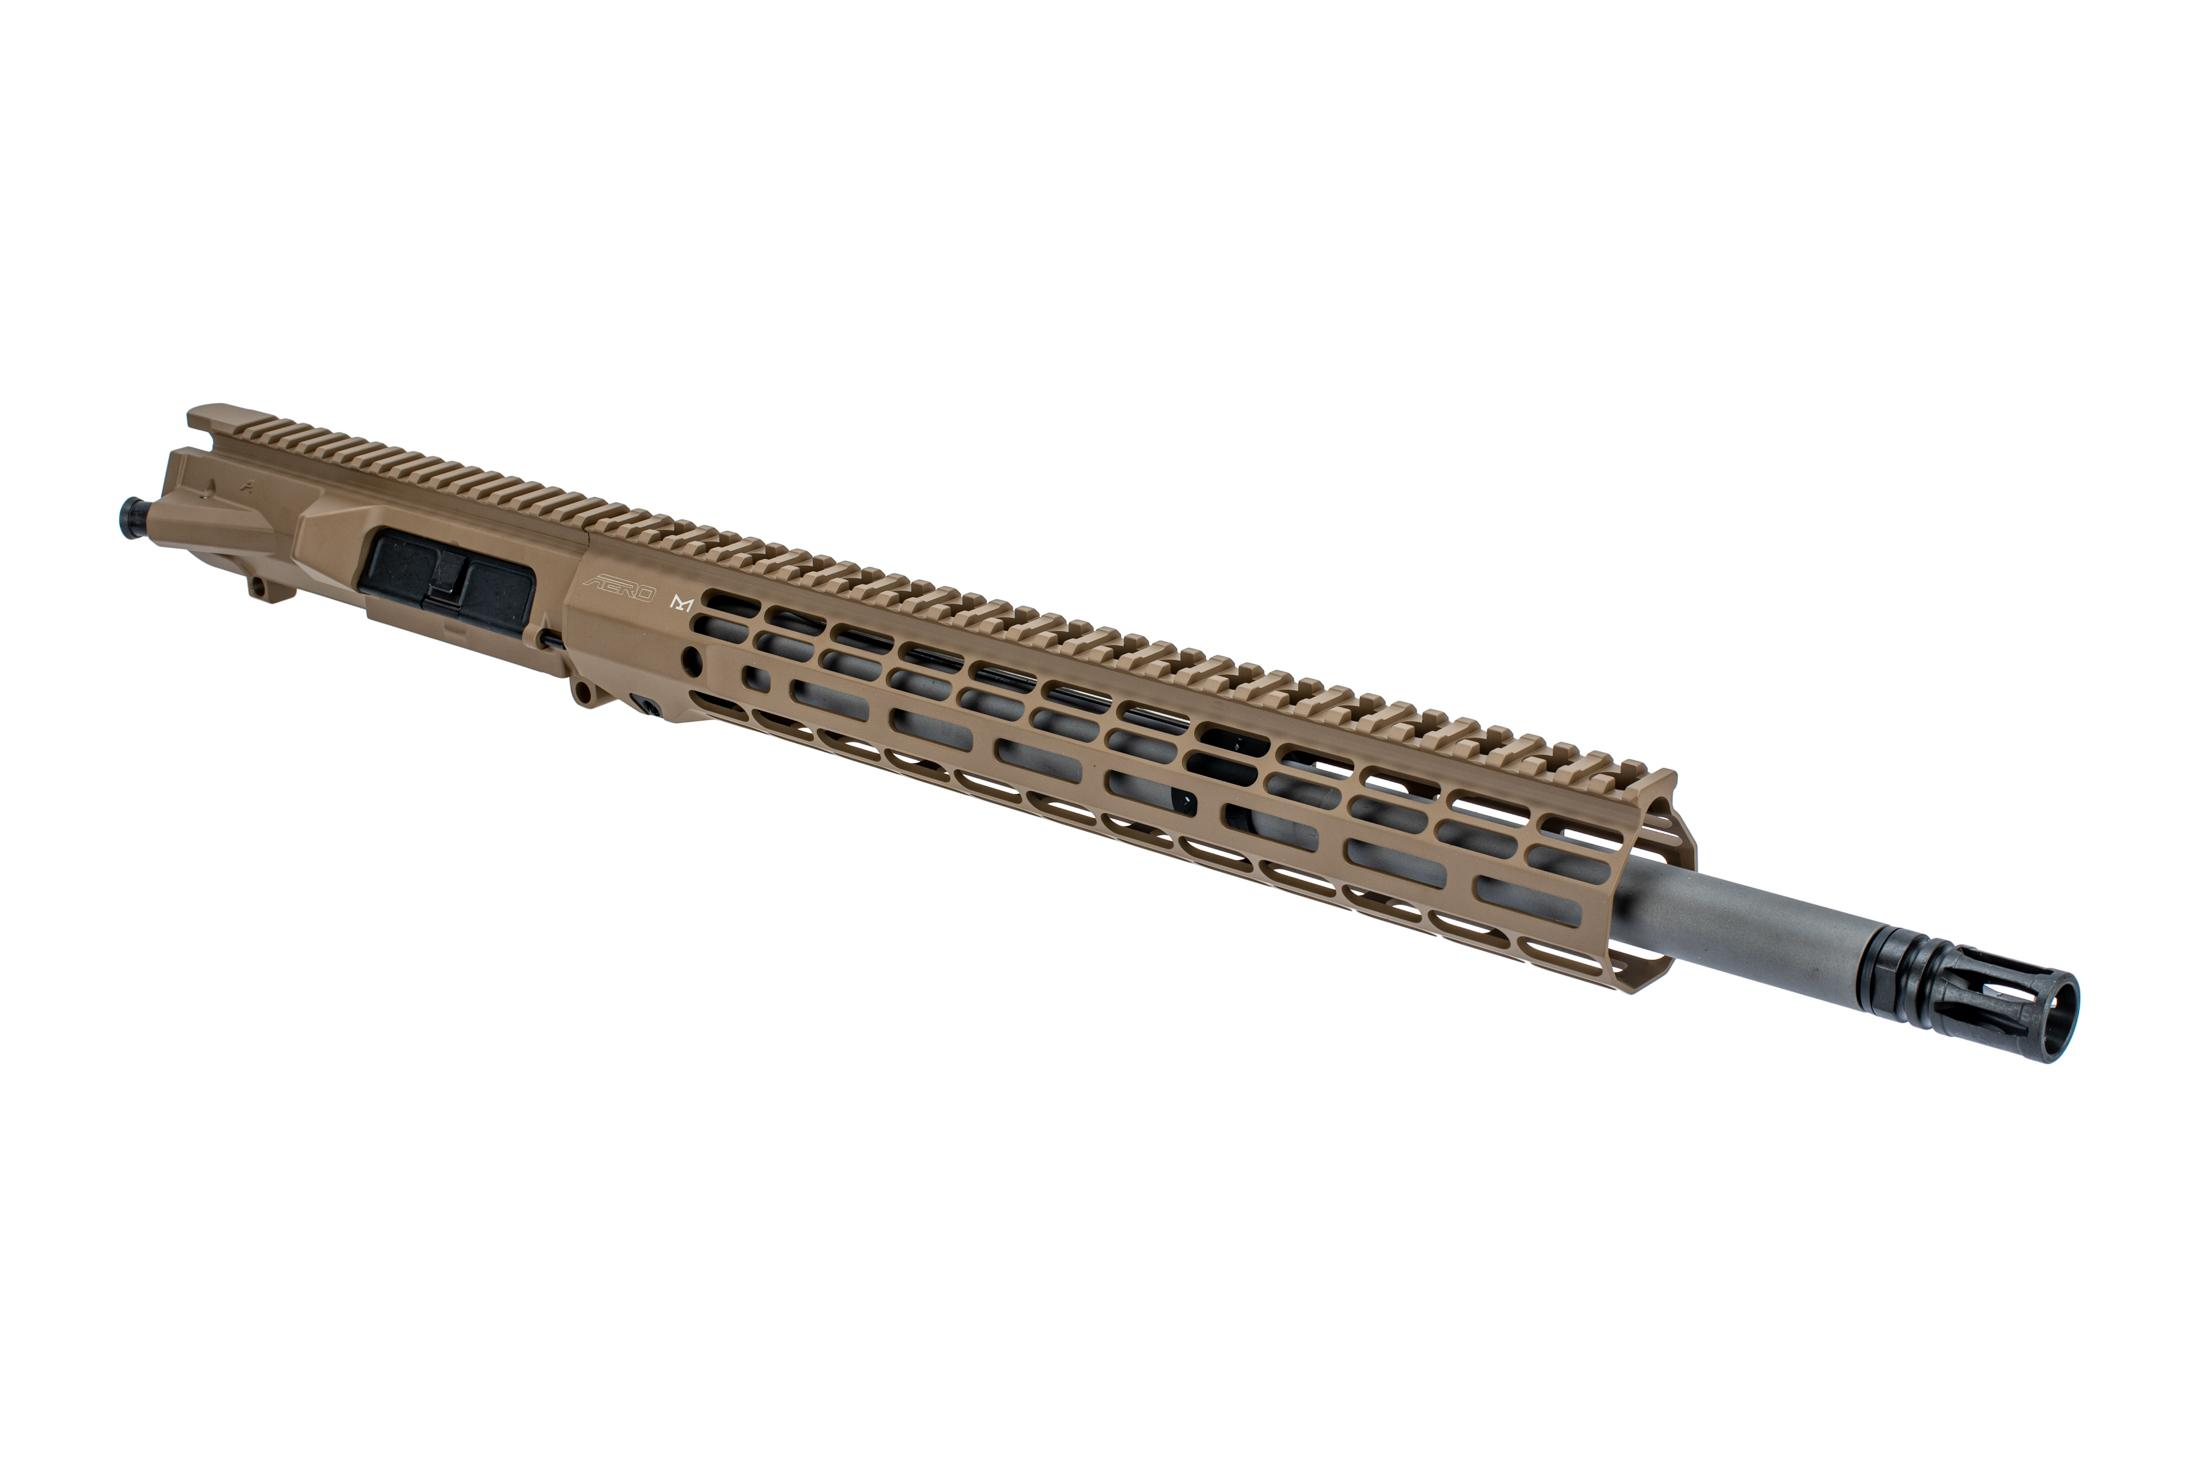 Aero Precision M5 18 barreled upper receiver with 6.5CM chamber mid-length gas system and Atlas R-ONE FDE handguard